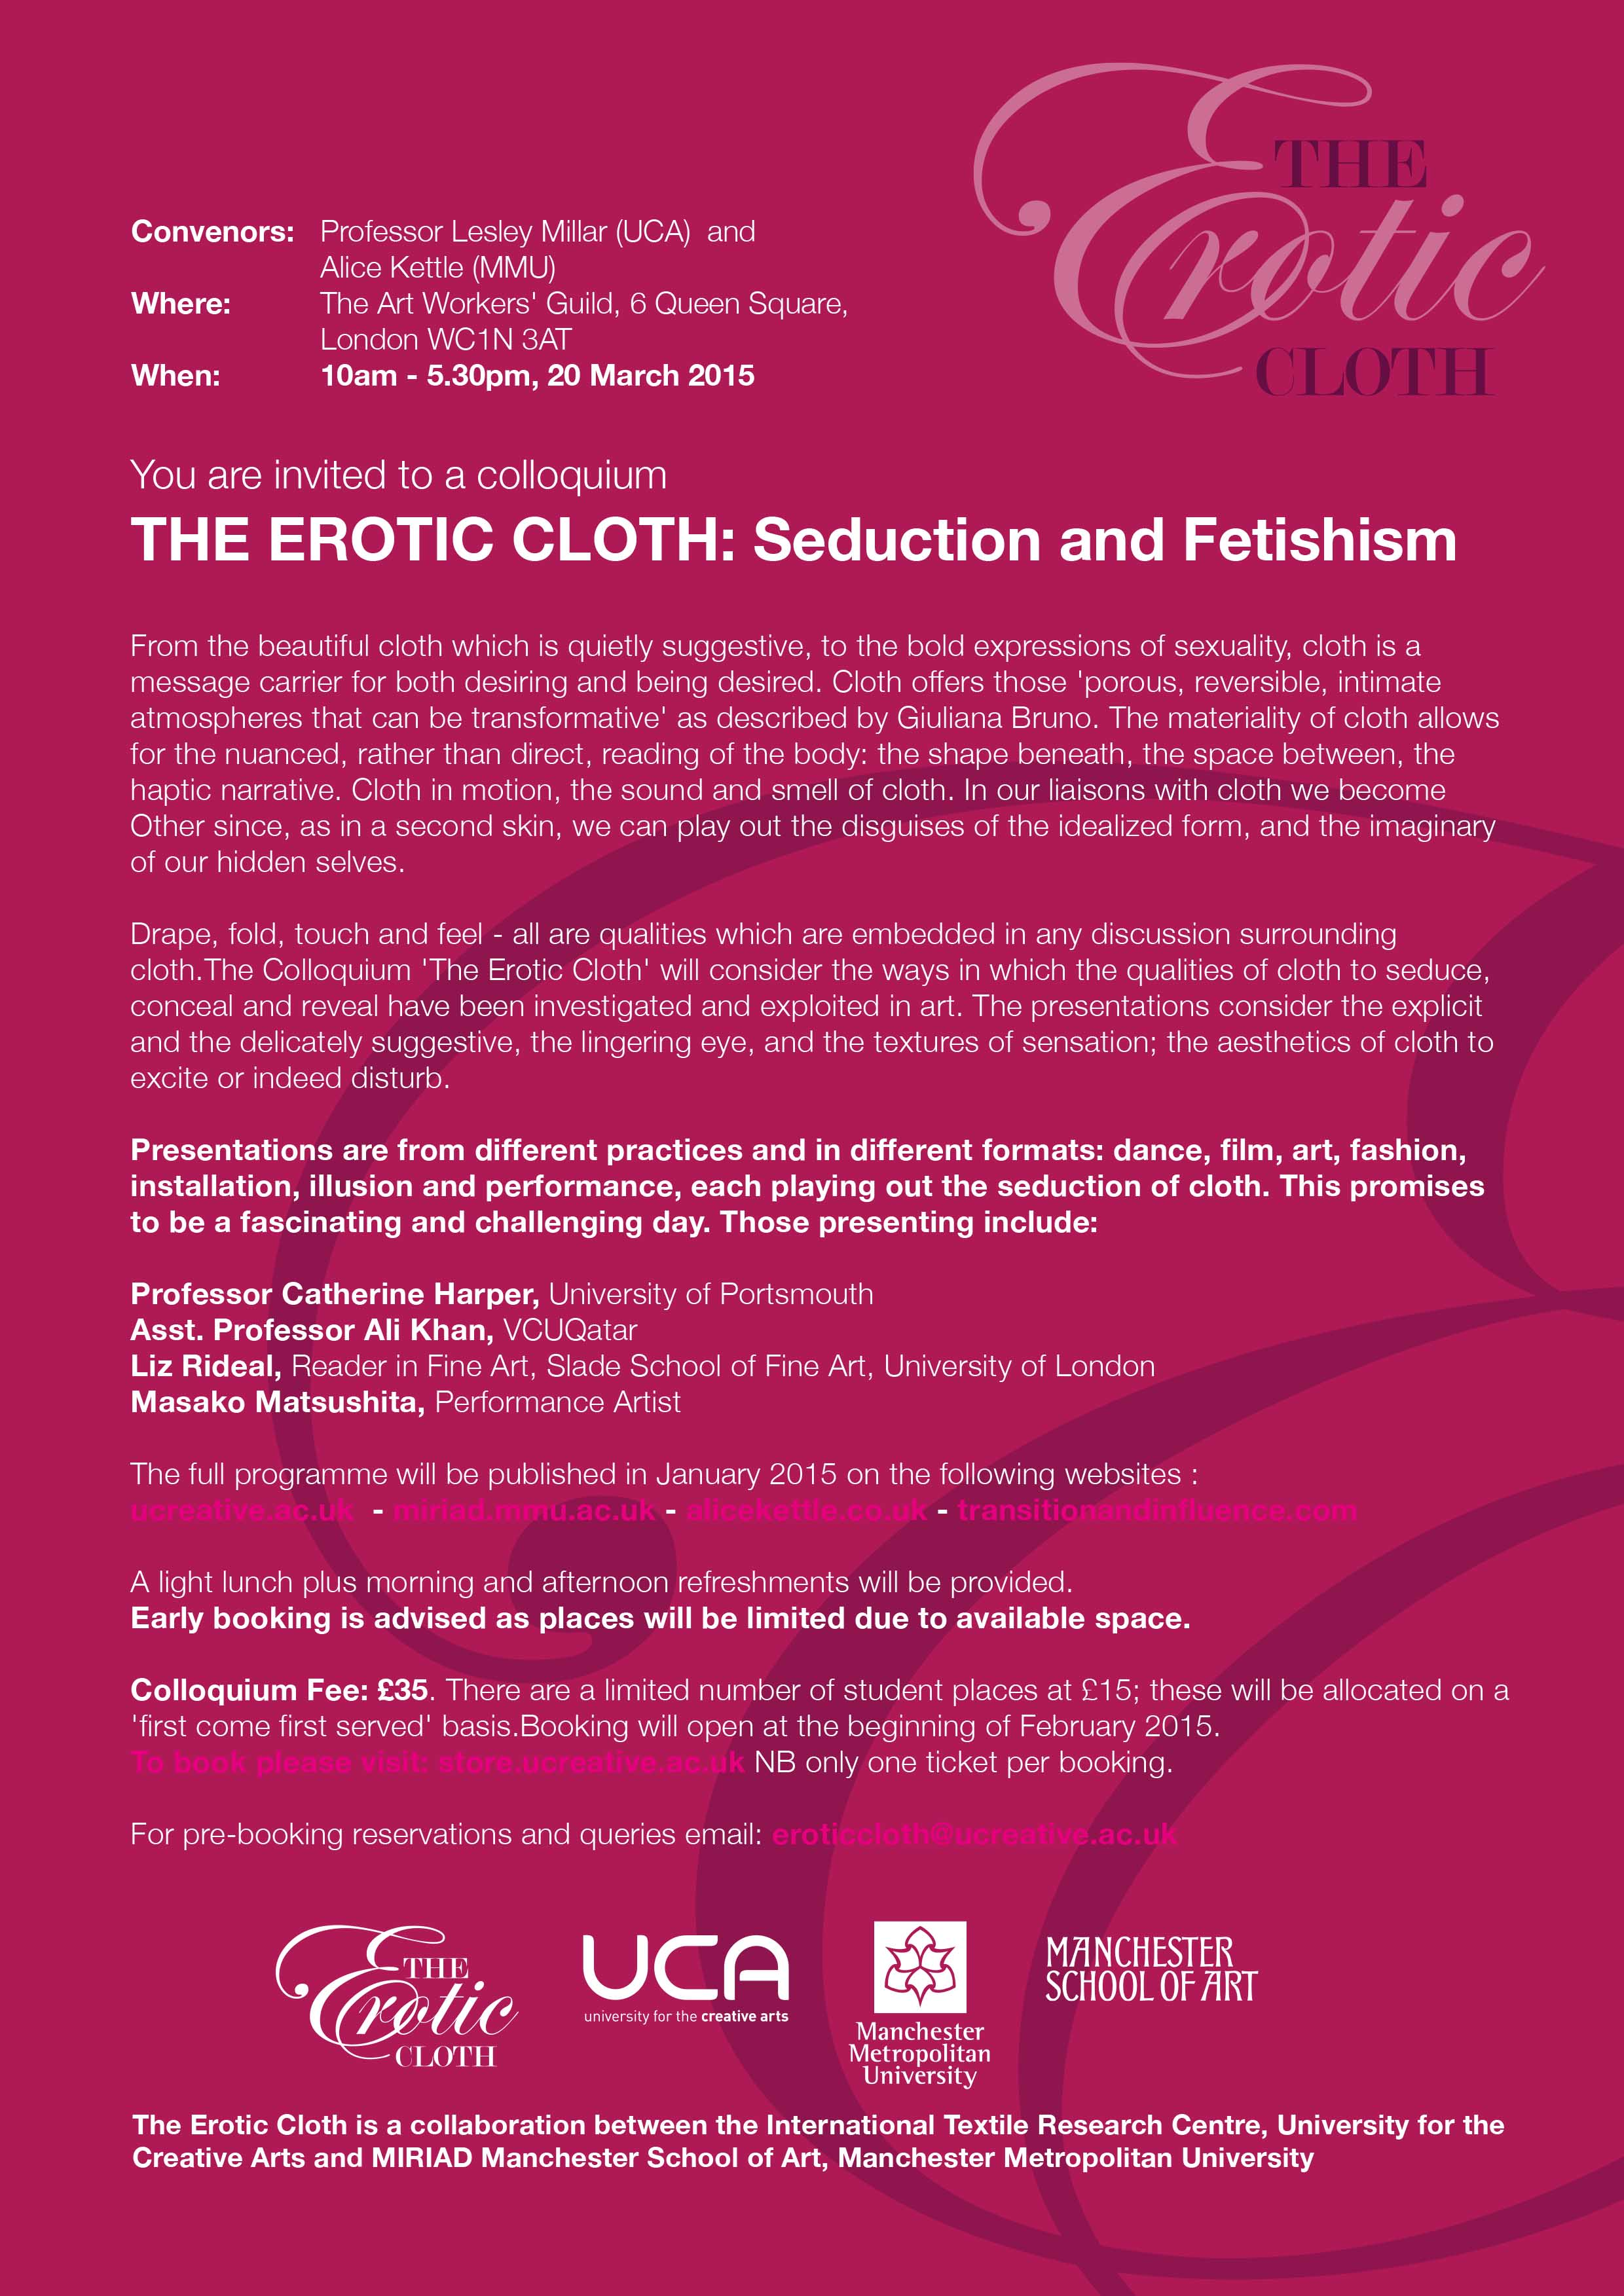 The Erotic Cloth